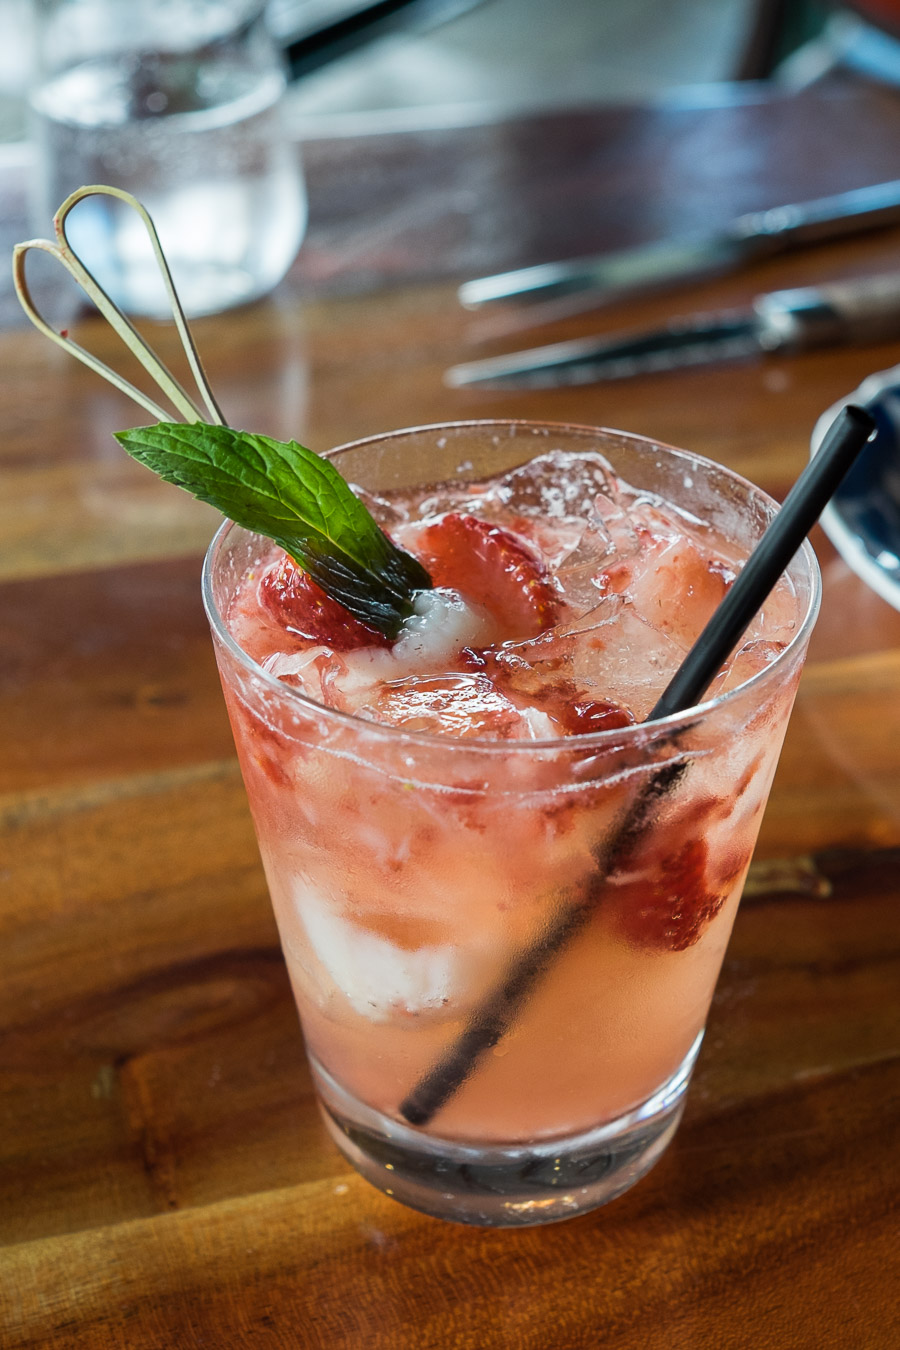 Lychee Ecstasy mocktail (AU$12) - with fresh strawberries, lychees, lime, mint and lemonade.